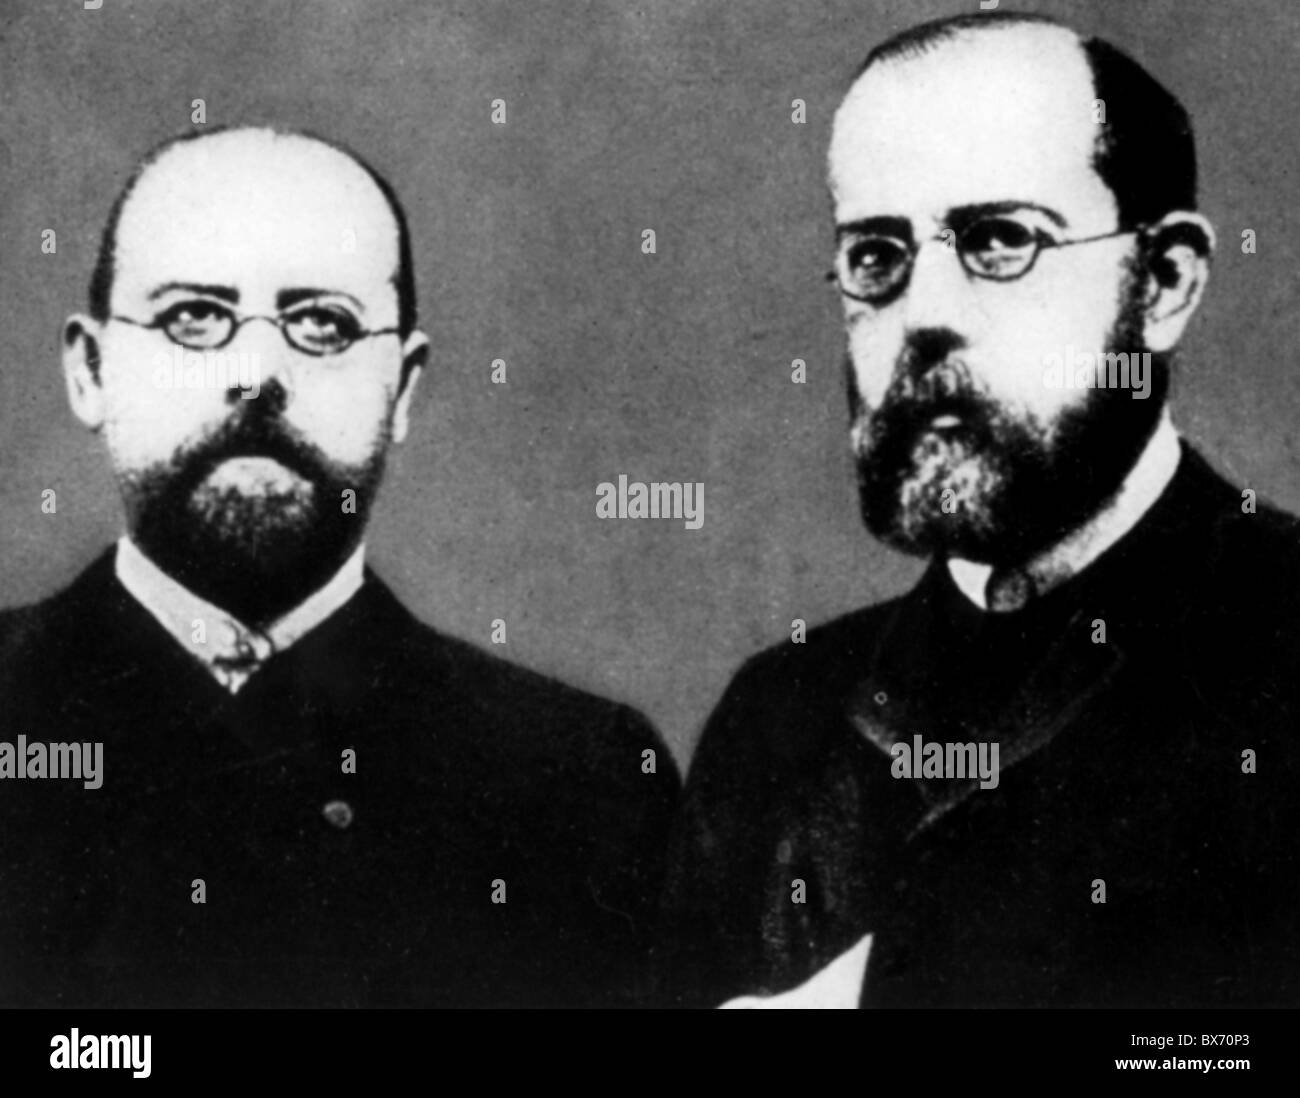 Koch, Robert, 11.12.1843 - 27. 5.1910, German physician, with colleague at the Imperial Health Office Friedrich - Stock Image